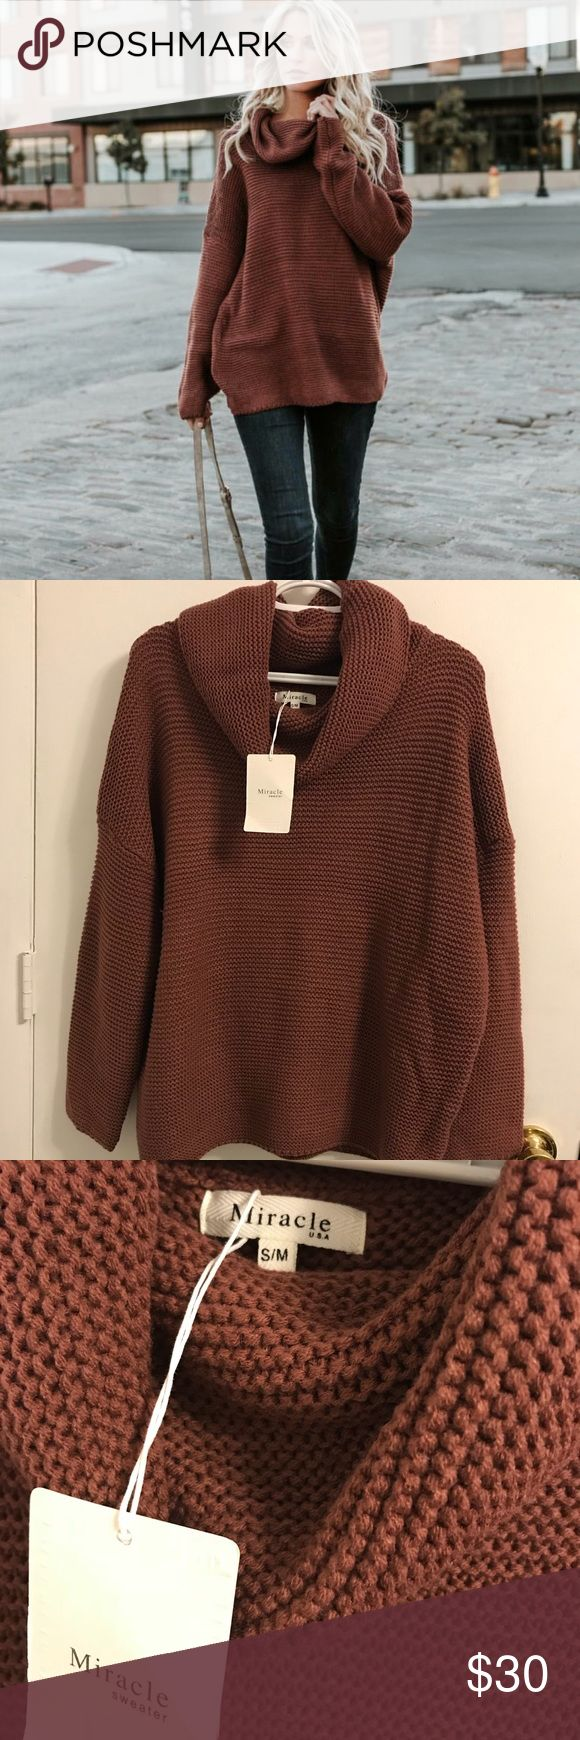 Women's Cowl Neck Sweater This slightly oversized cowl neck sweater is a must have winter staple! Super soft cotton acrylic blend. Ribbed texture dolman sleeve. True to size made to fit big.  Color: red bean in a small/medium Miracle Sweater Sweaters Cowl & Turtlenecks